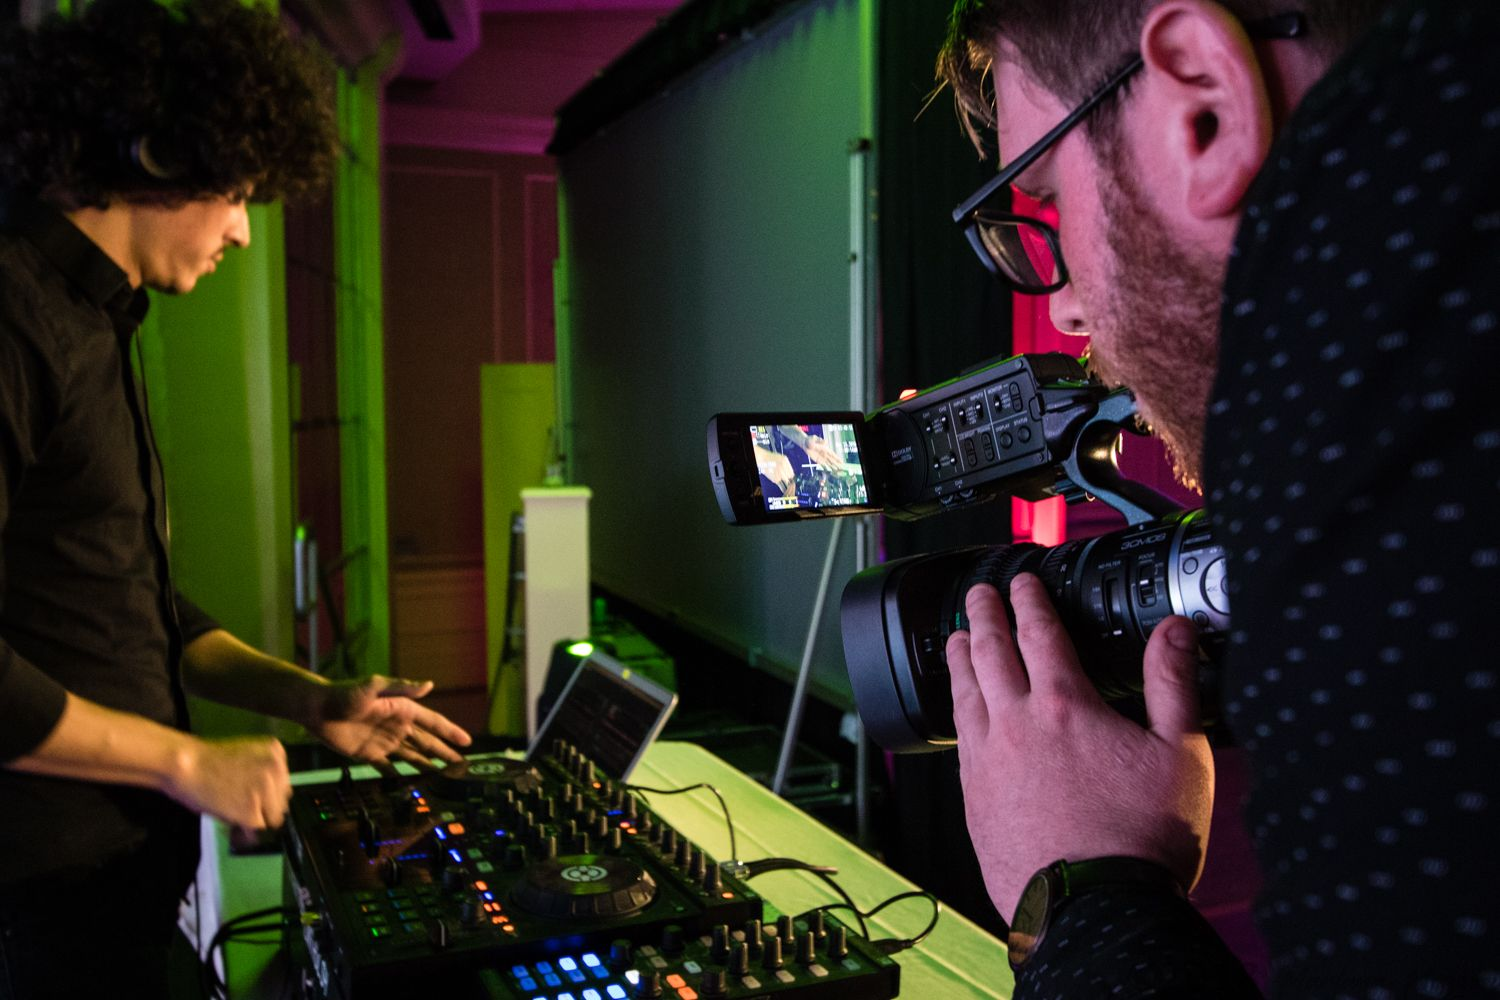 Camera man getting a shot of a DJ at an event